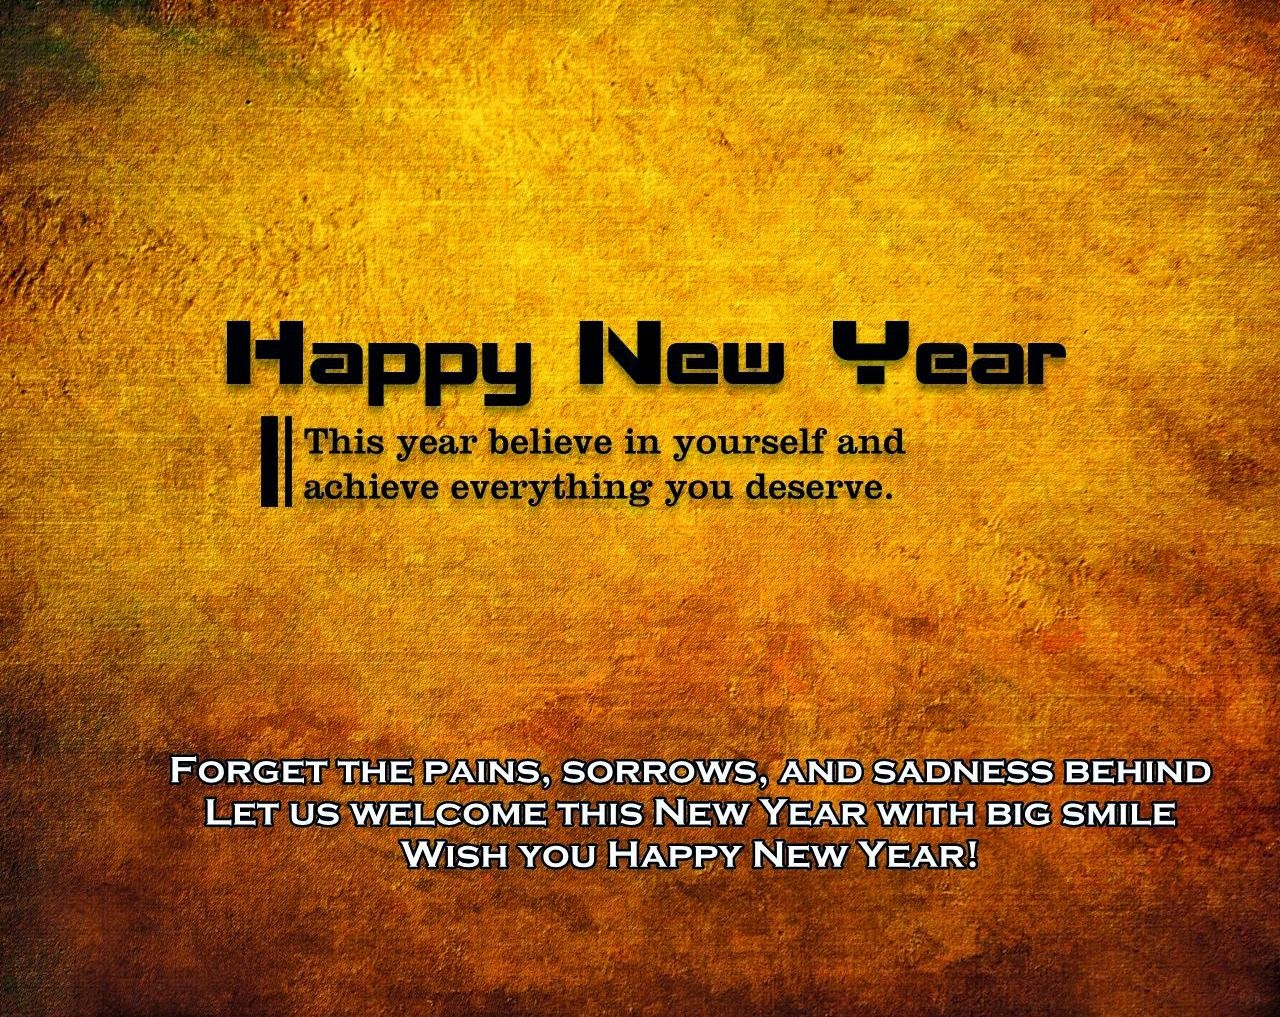 Happy New Year Pictures Quotes: Happy New Year 2015 Inspirational Quotes. QuotesGram